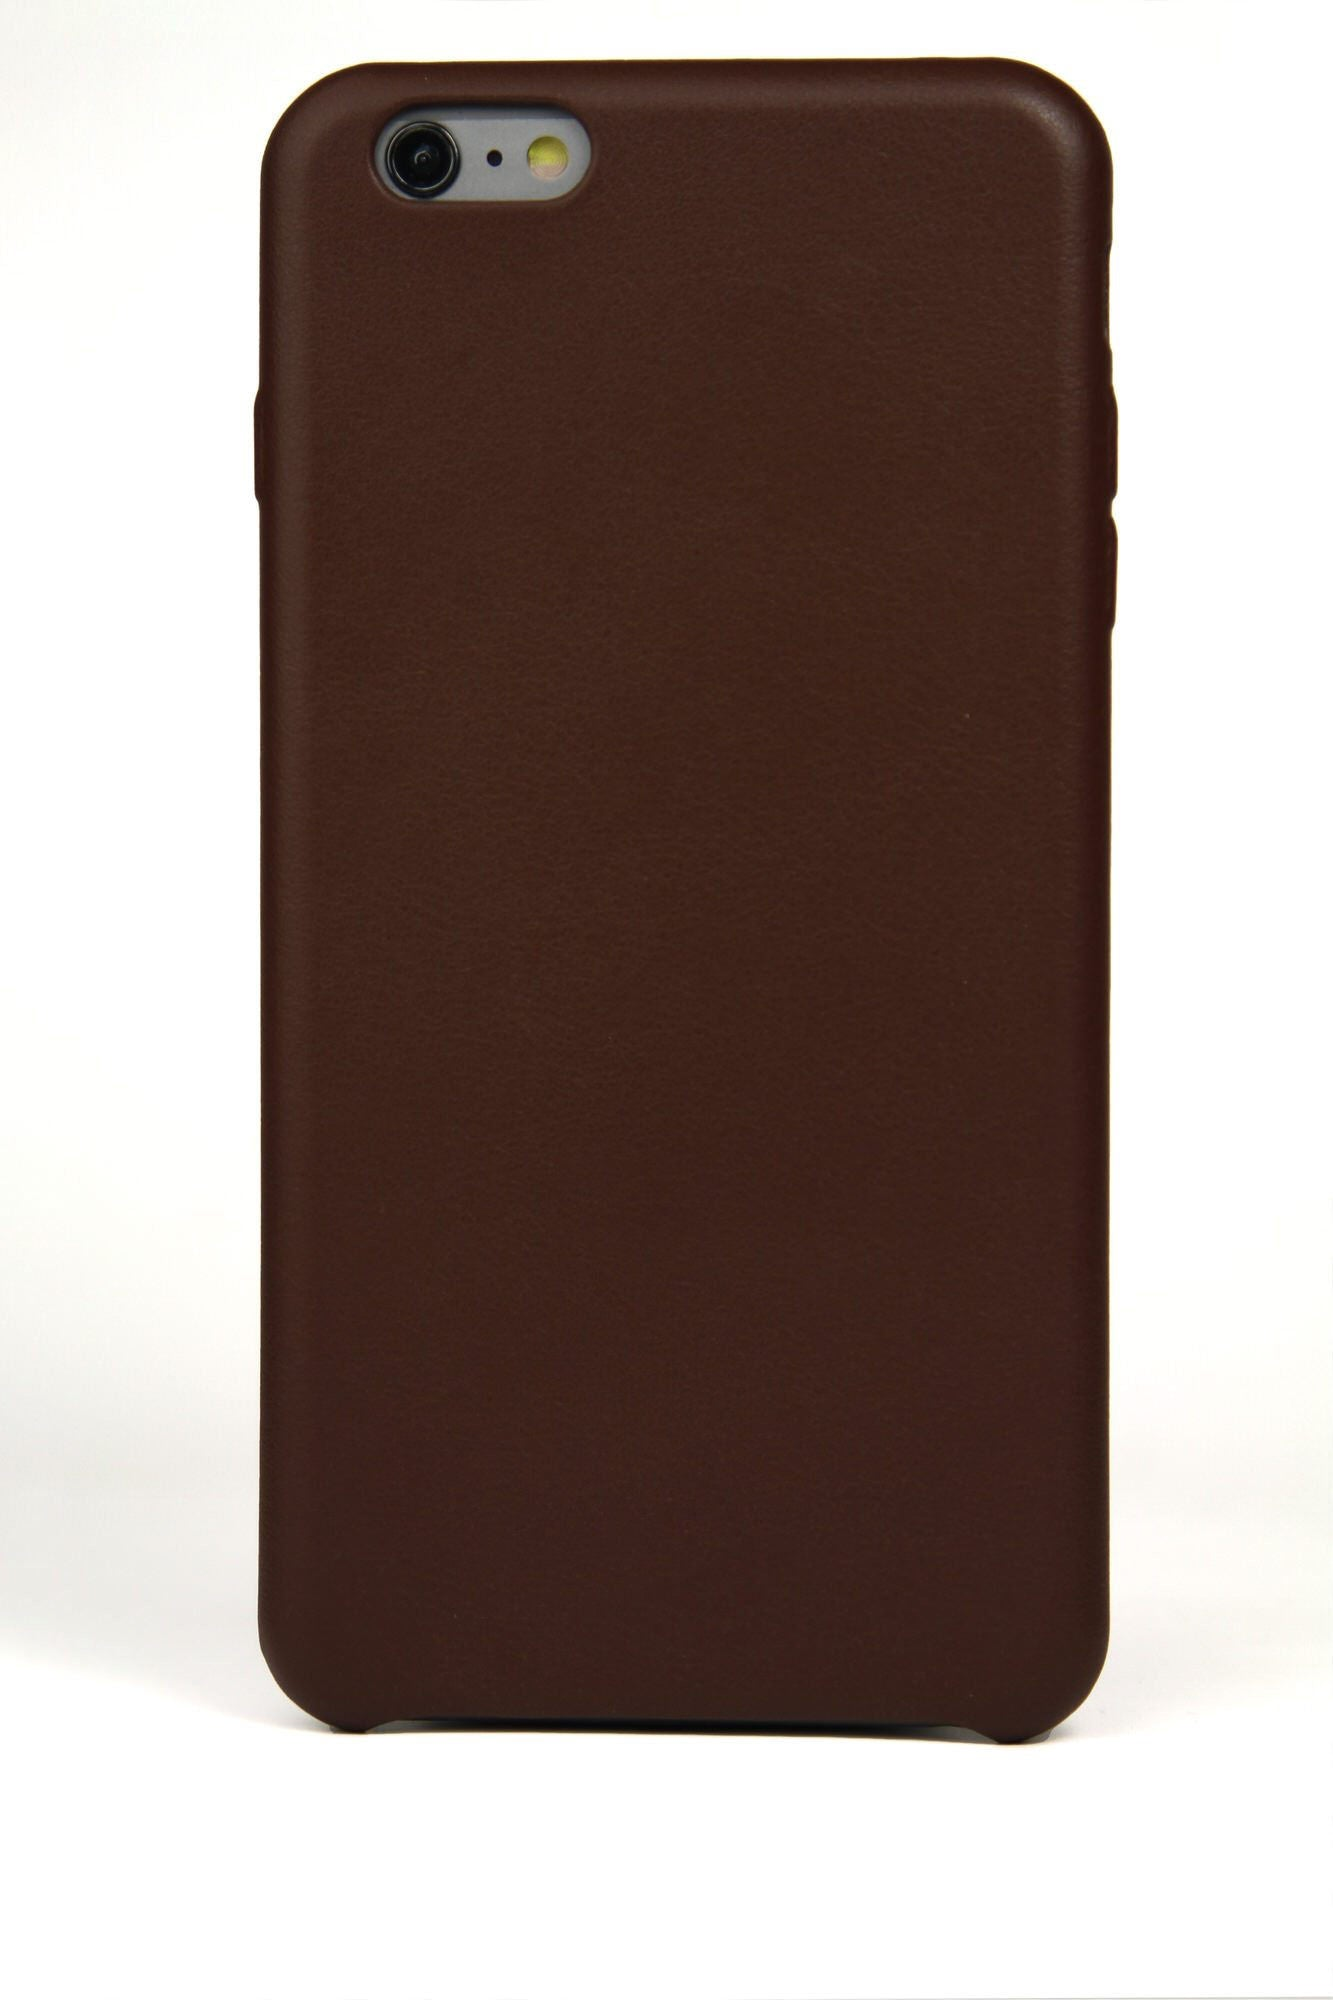 iPhone 6 Plus Case Brown Leather